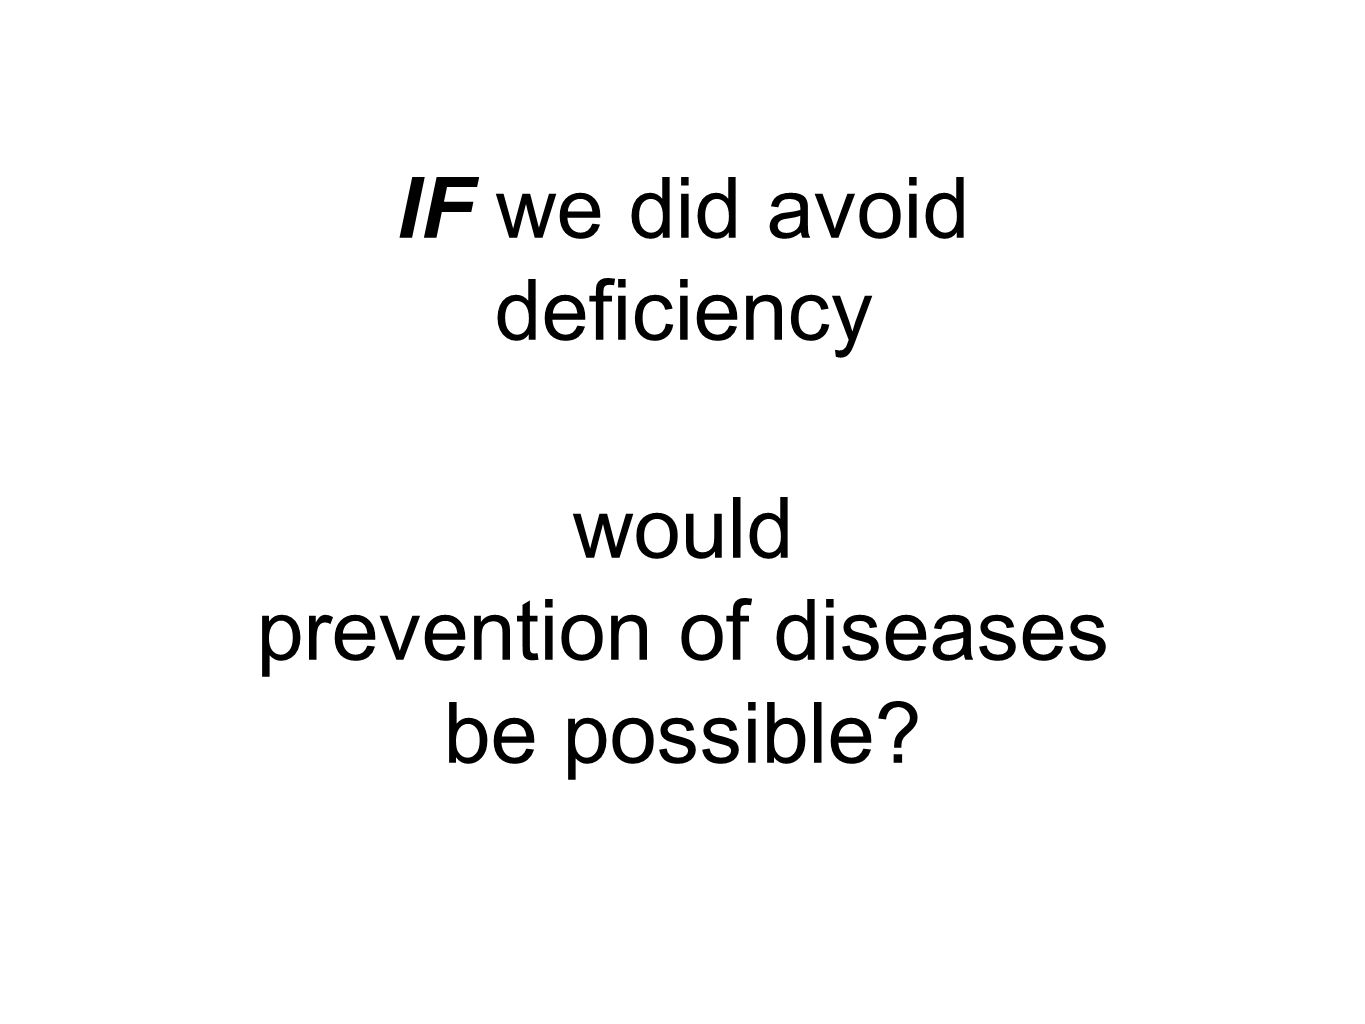 IF we did avoid deficiency would prevention of diseases be possible